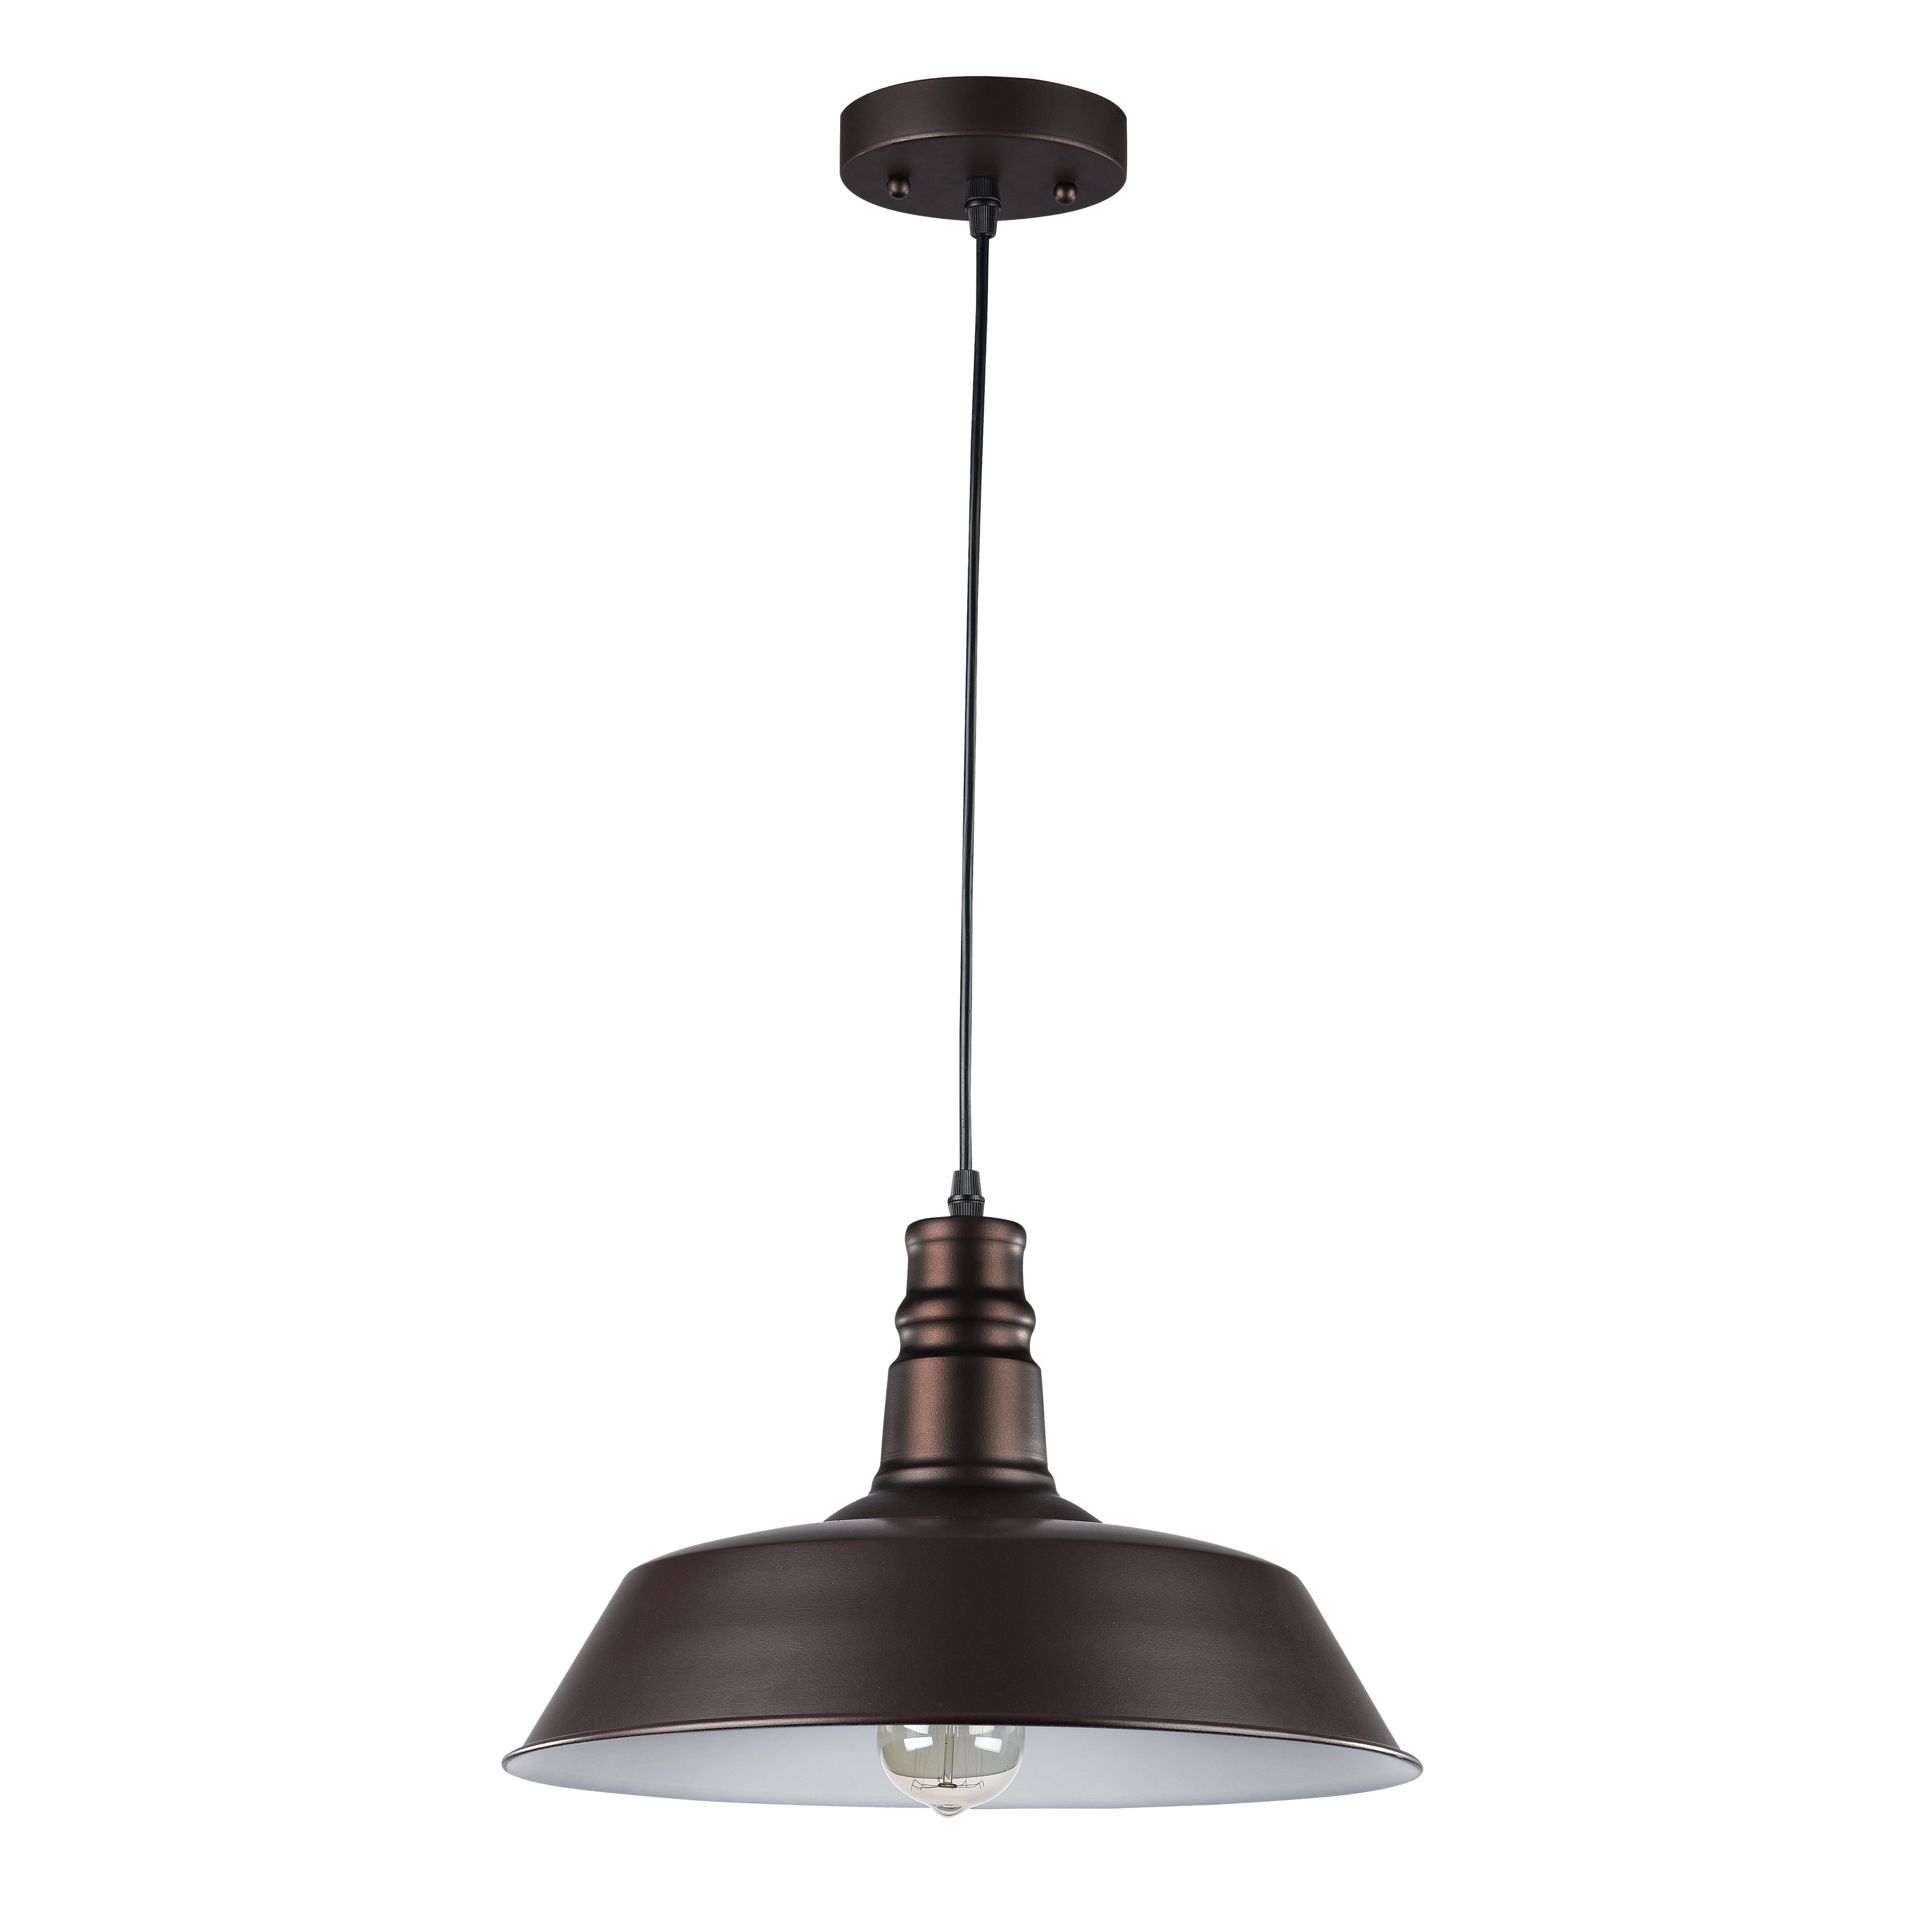 Bouvet 1 Light Dome Pendant Intended For Well Known Conover 1 Light Dome Pendants (View 2 of 25)